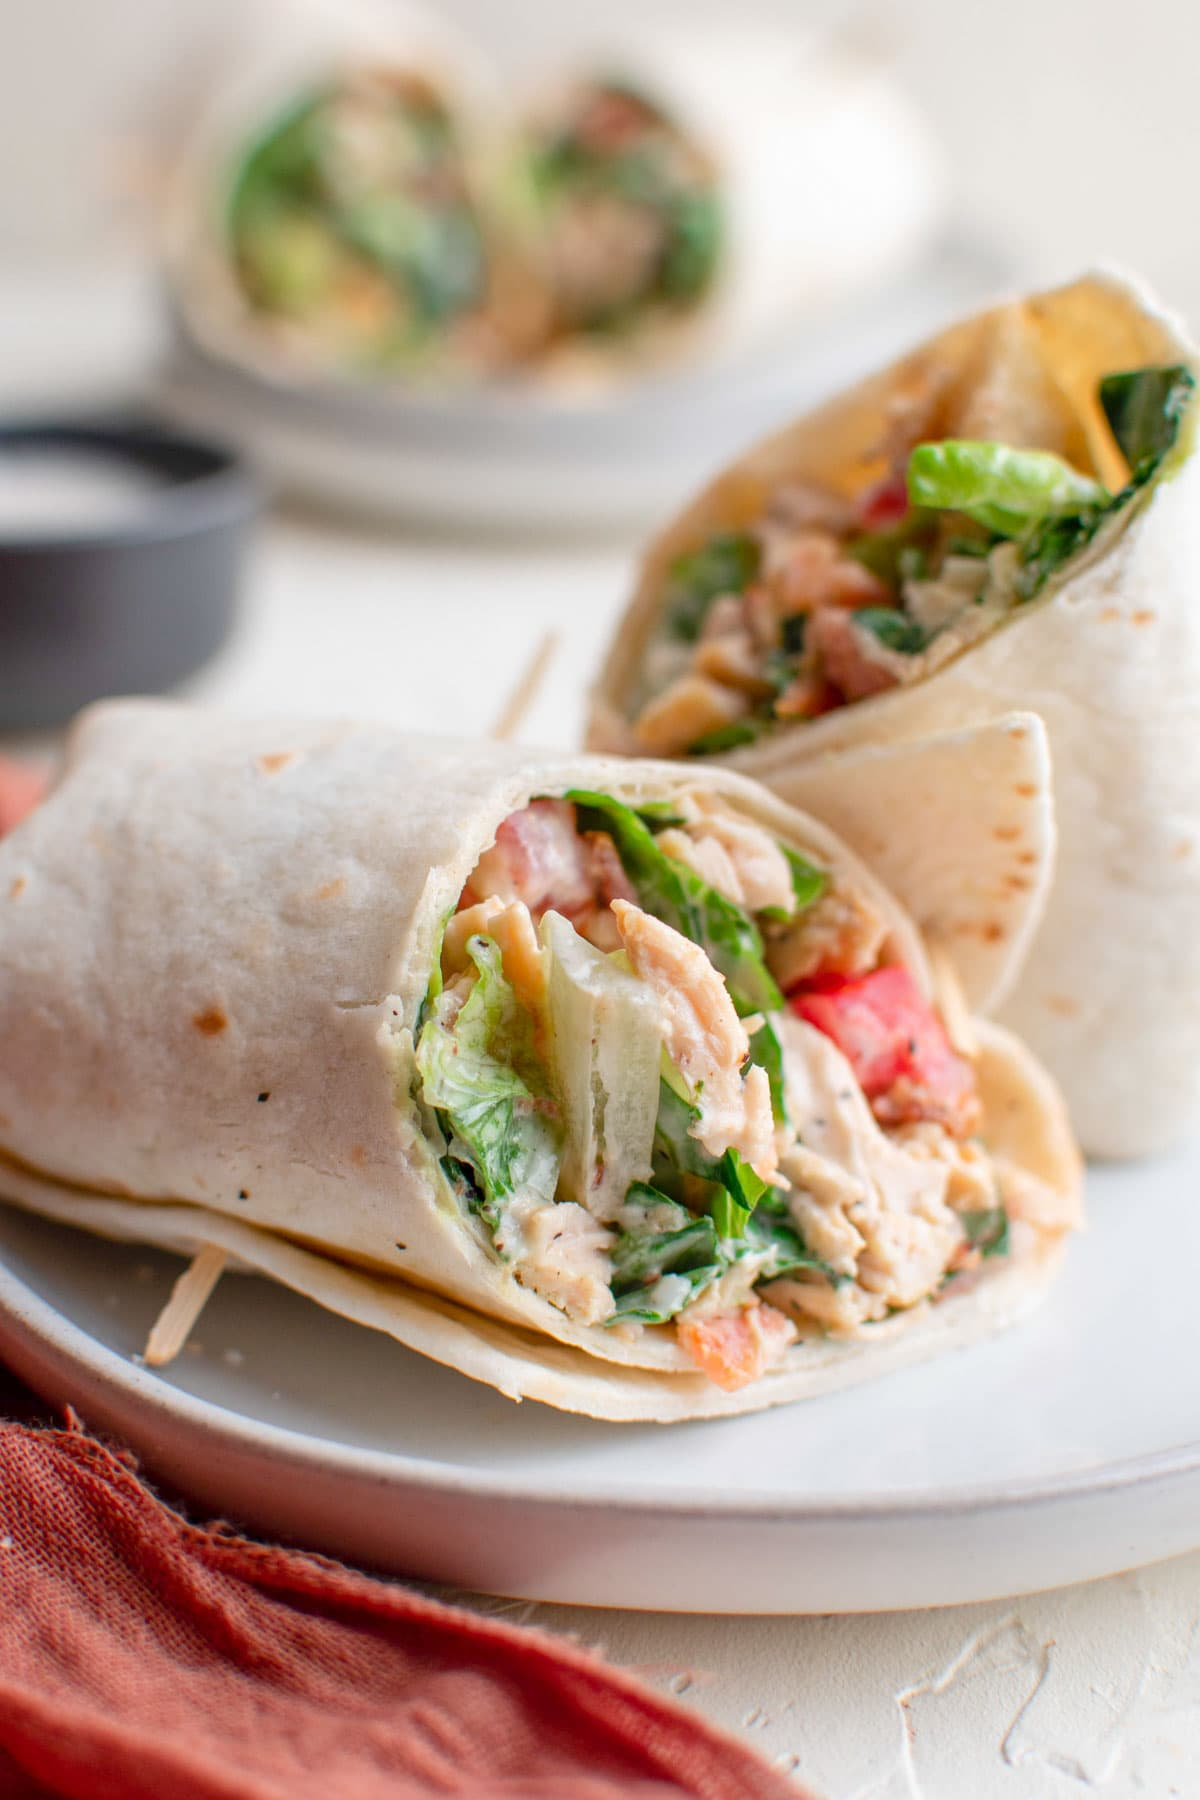 white plates, pink napkin, chicken wraps with lettuce and tomatoes, toothpicks